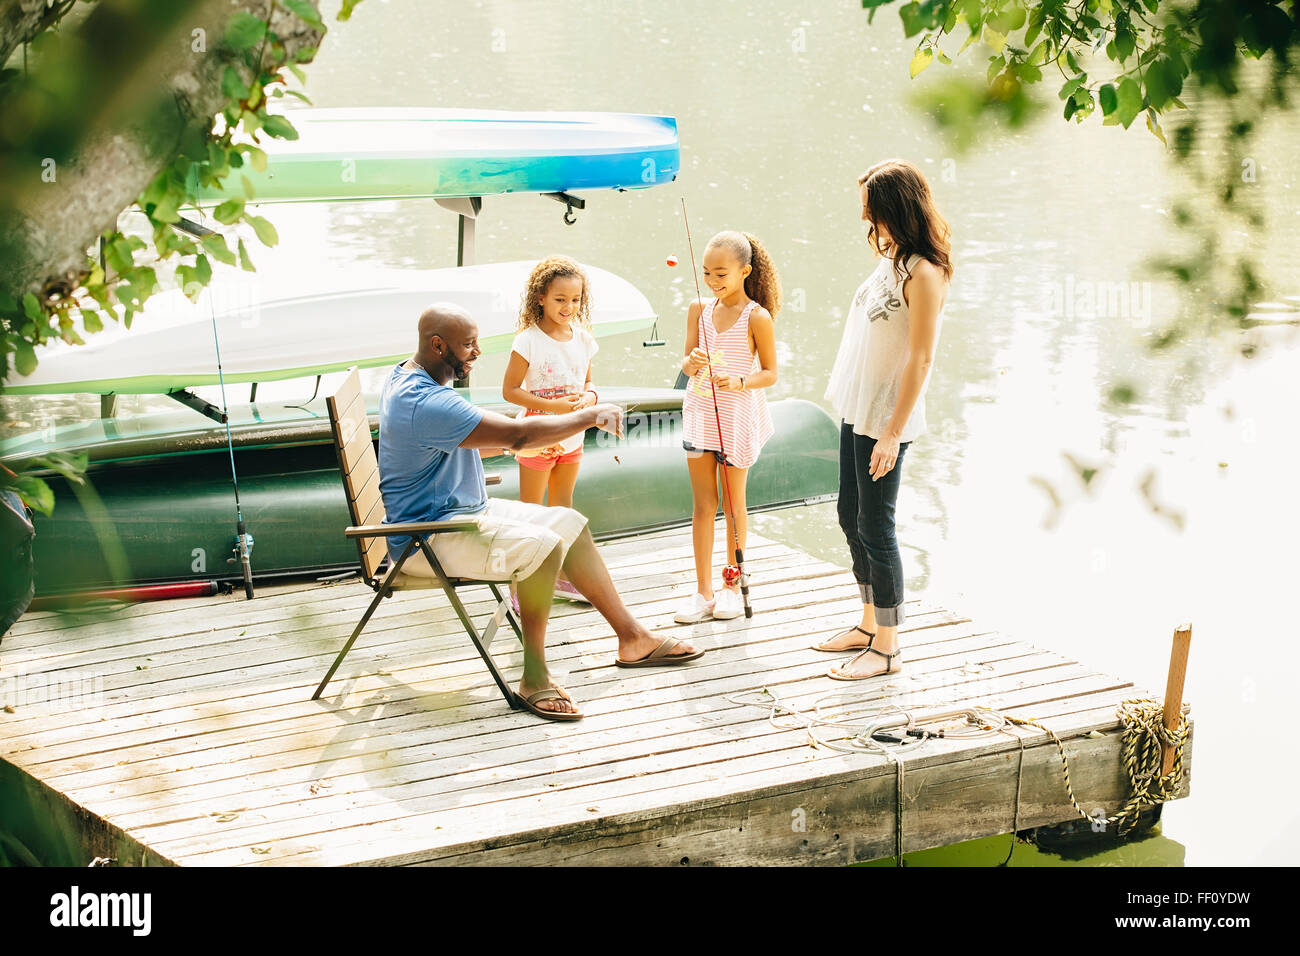 Familie am dock in See Stockfoto